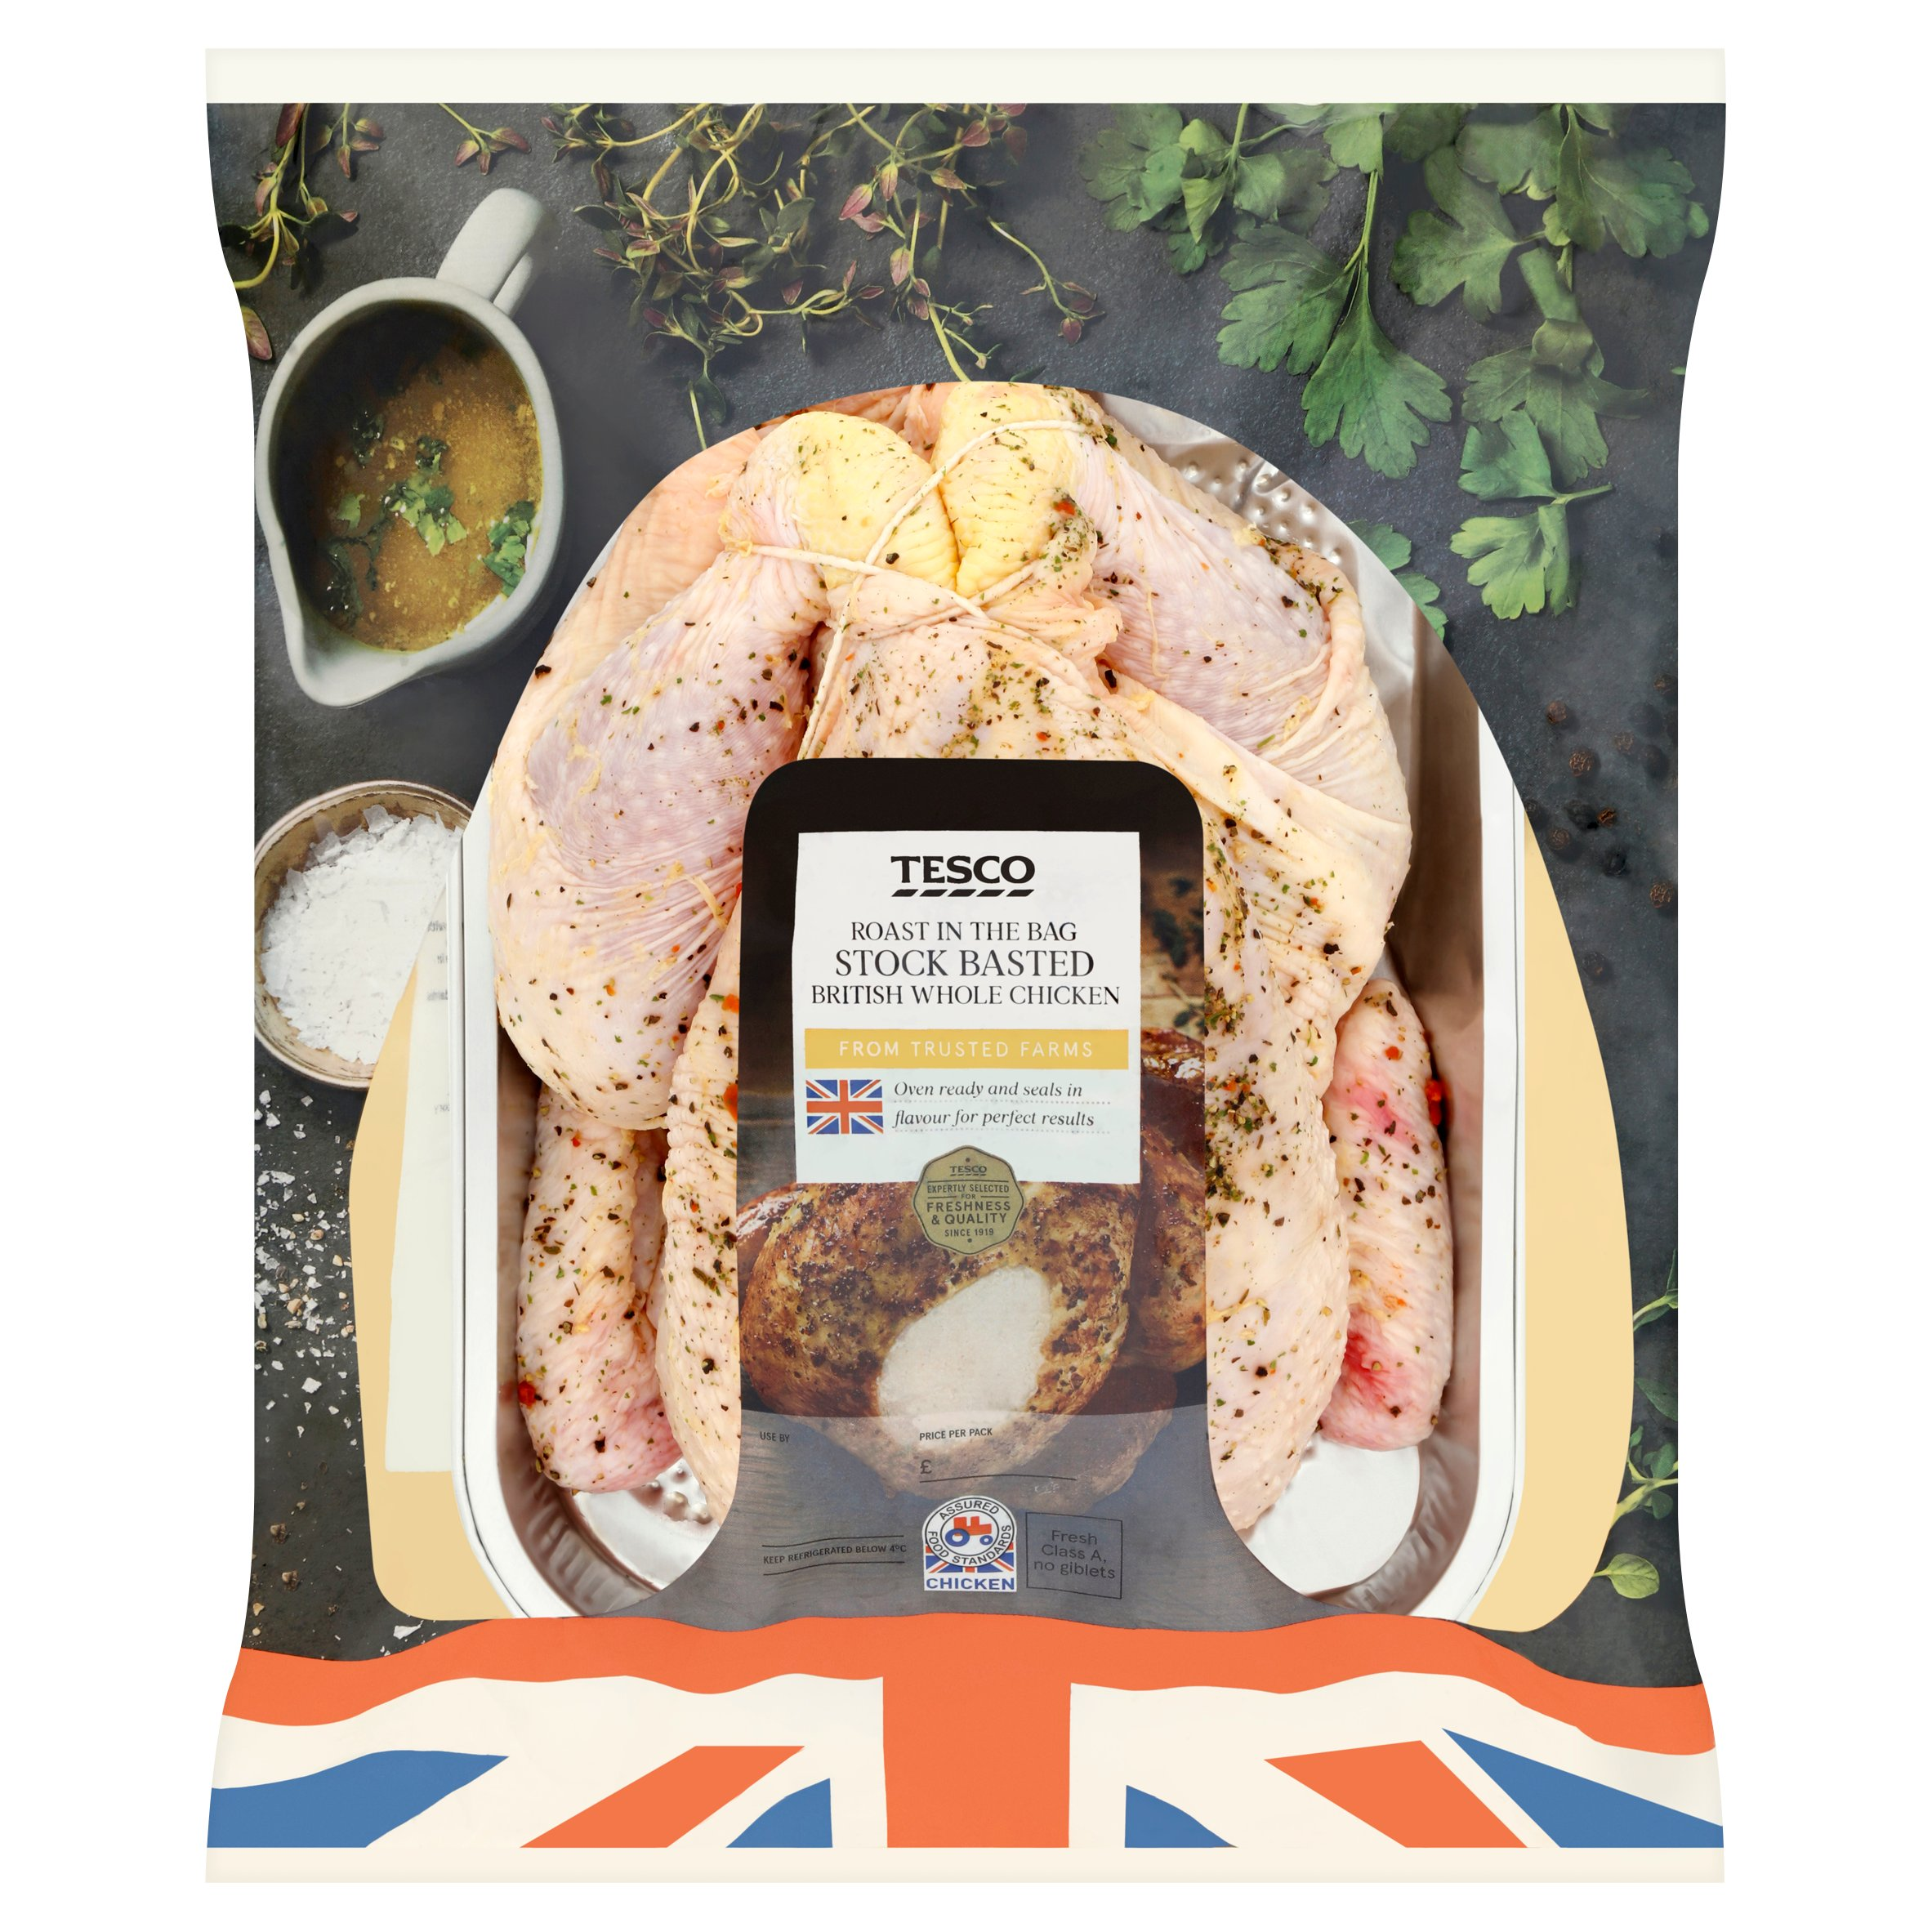 Tesco Roast In Bag Ready Basted Whole Chicken 1.5Kg